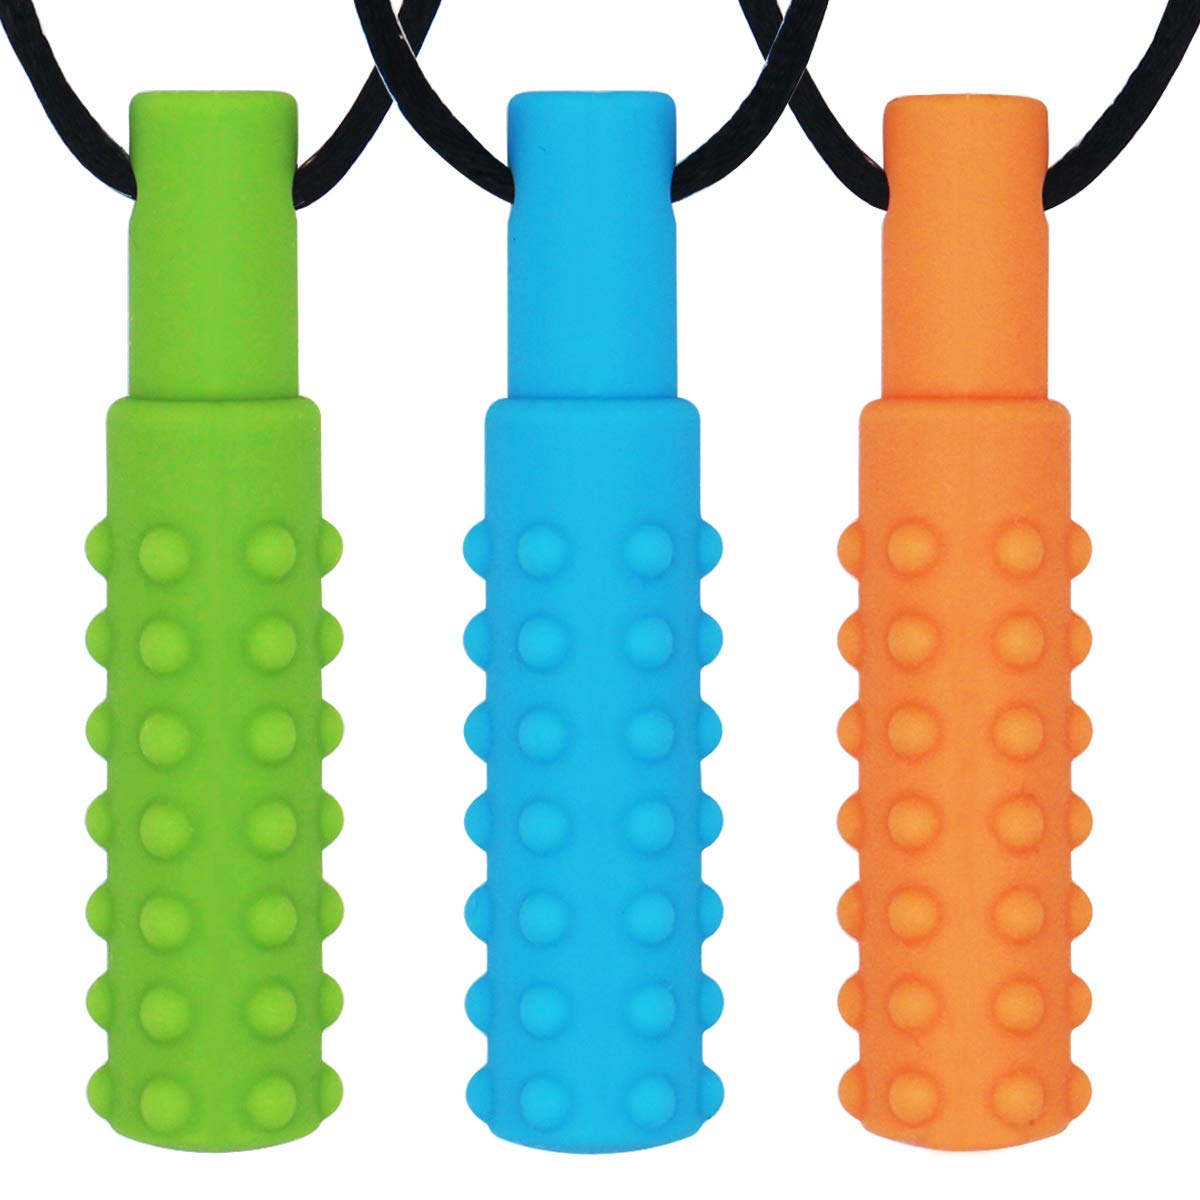 Sensory Chew Necklace (3 Pack) - Sensory Oral Motor Aids Teether Toys for Autism, ADHD, Baby Nursing or Special Needs- Reduces Chewing Biting Fidgeting for Kids Adult Chewers